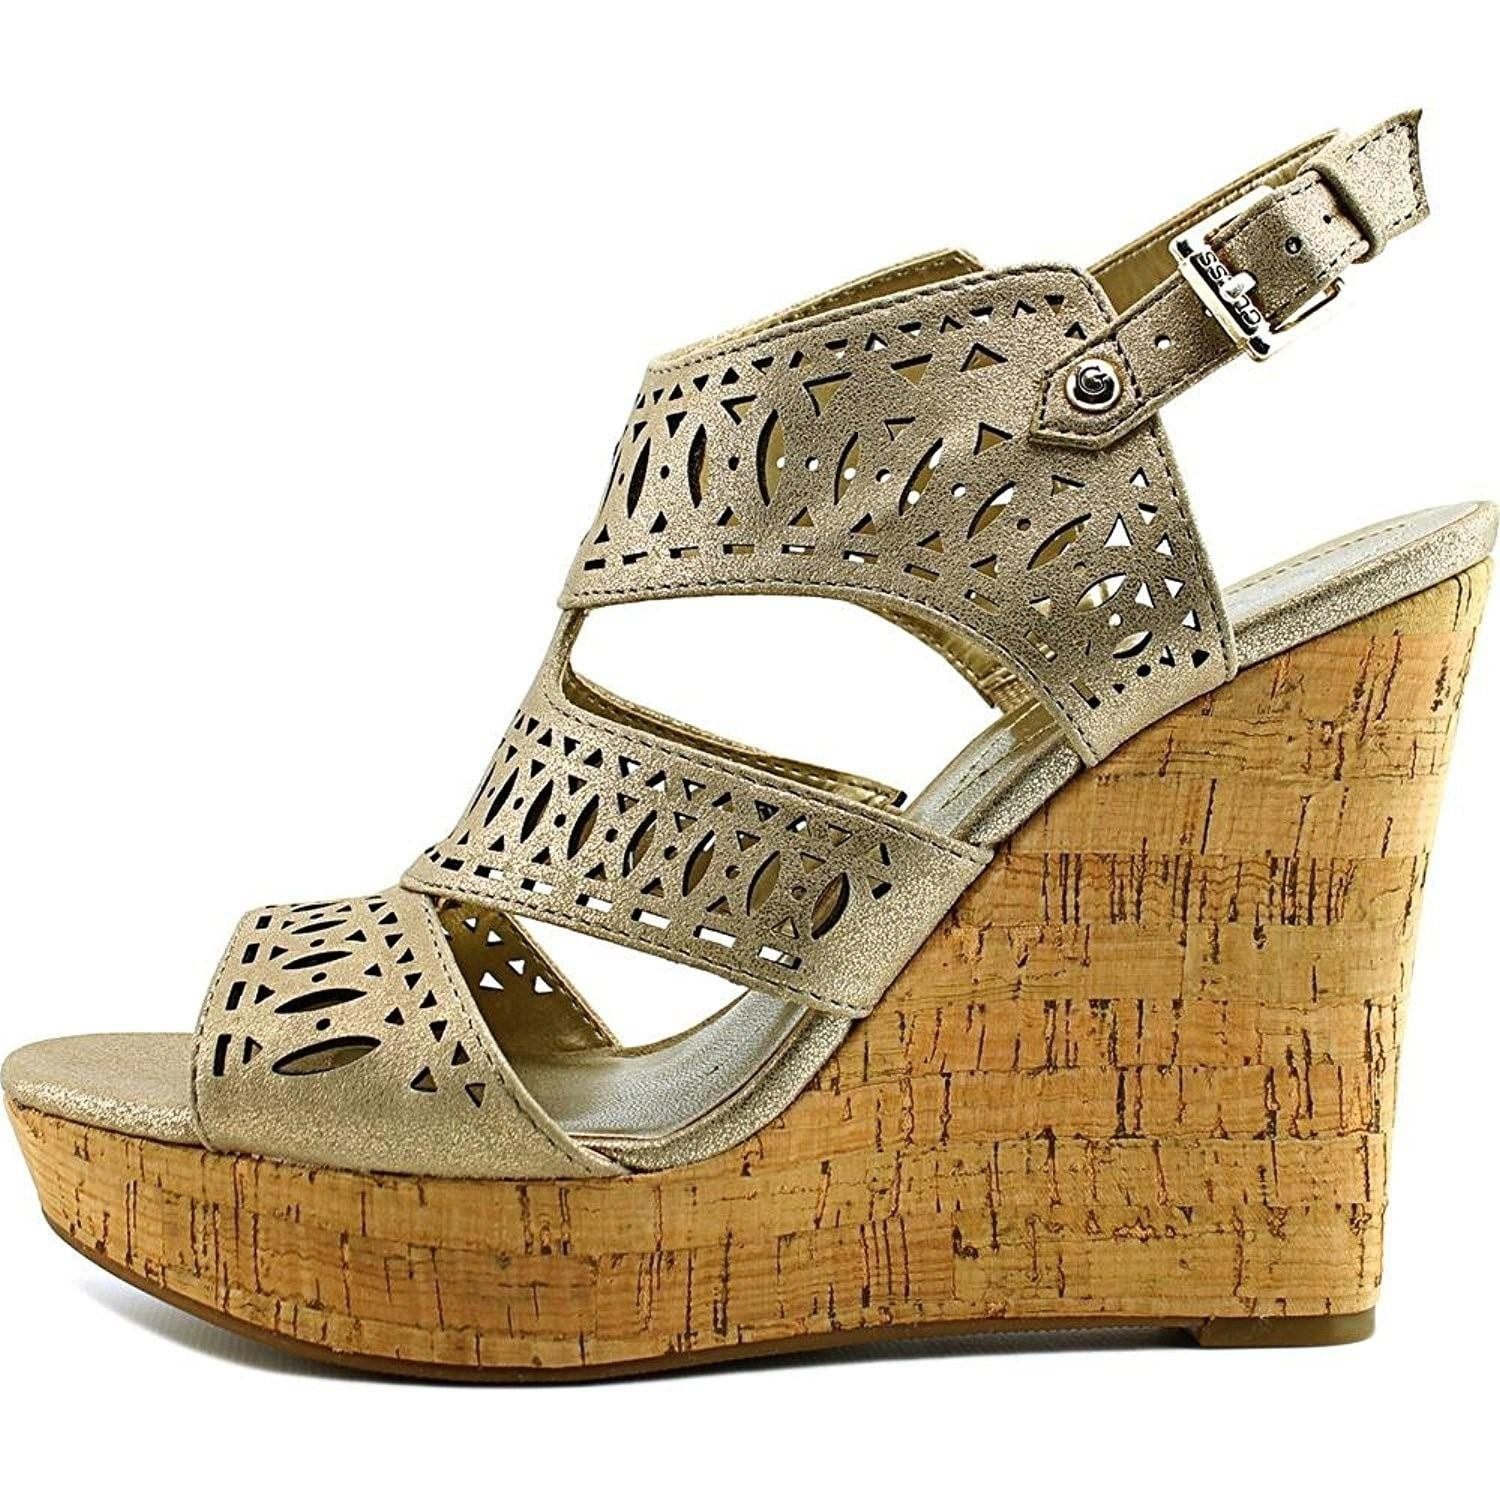 27a7d7181b5 Shop GUESS Womens Vannora Open Toe Casual Platform Sandals - Free Shipping  On Orders Over  45 - Overstock - 20504512